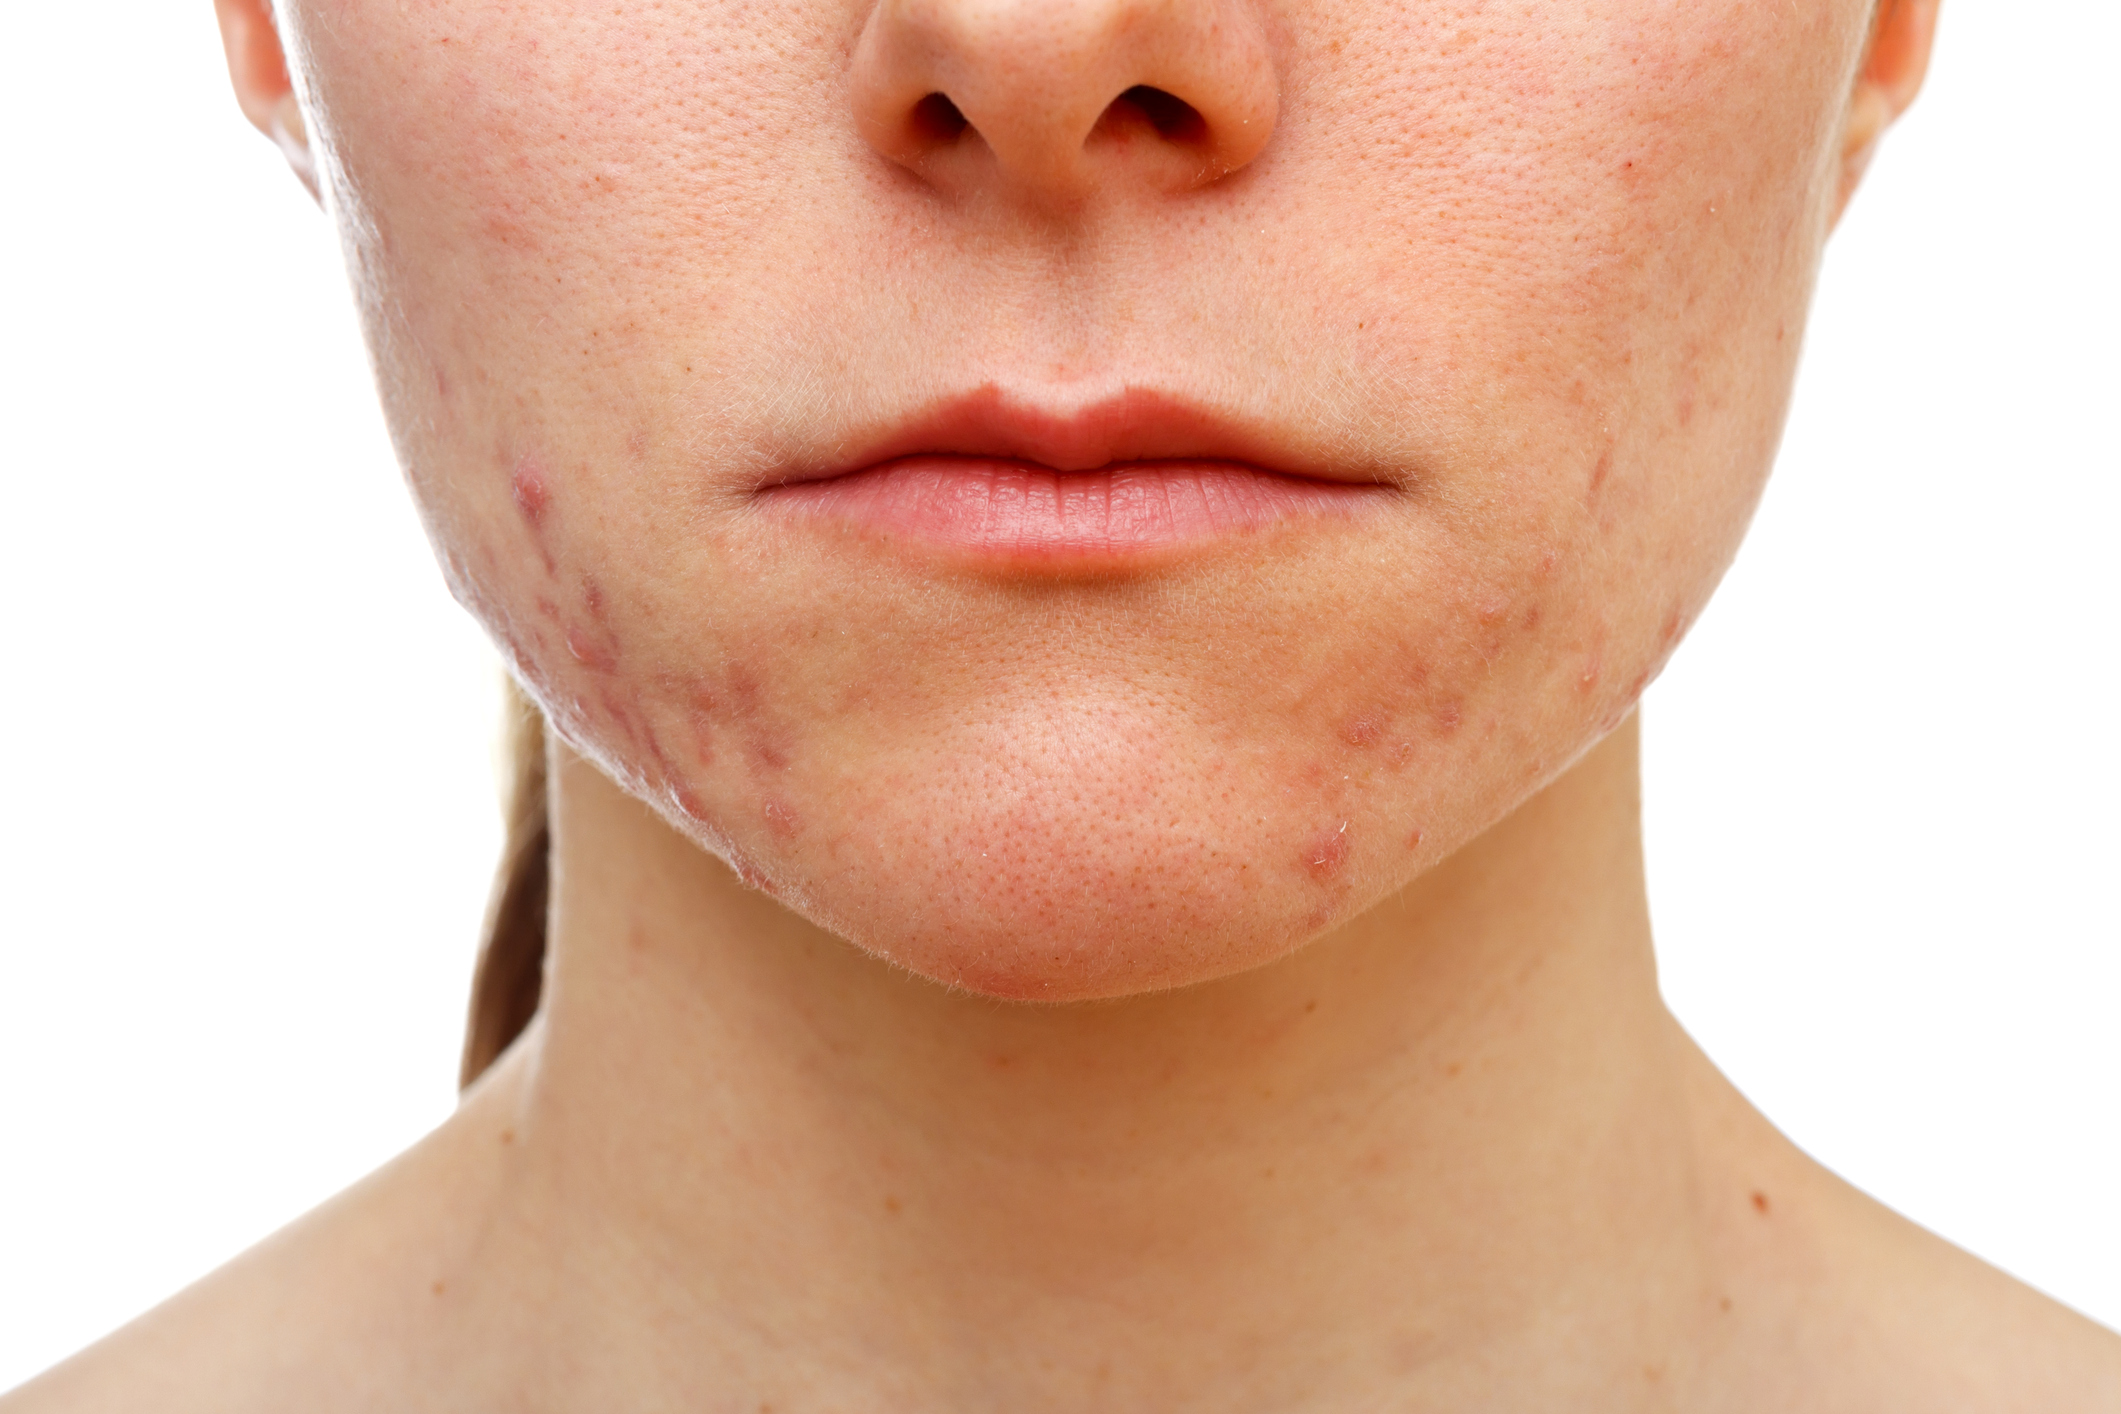 Acne treatment is provided at Hazelhill Family Practice